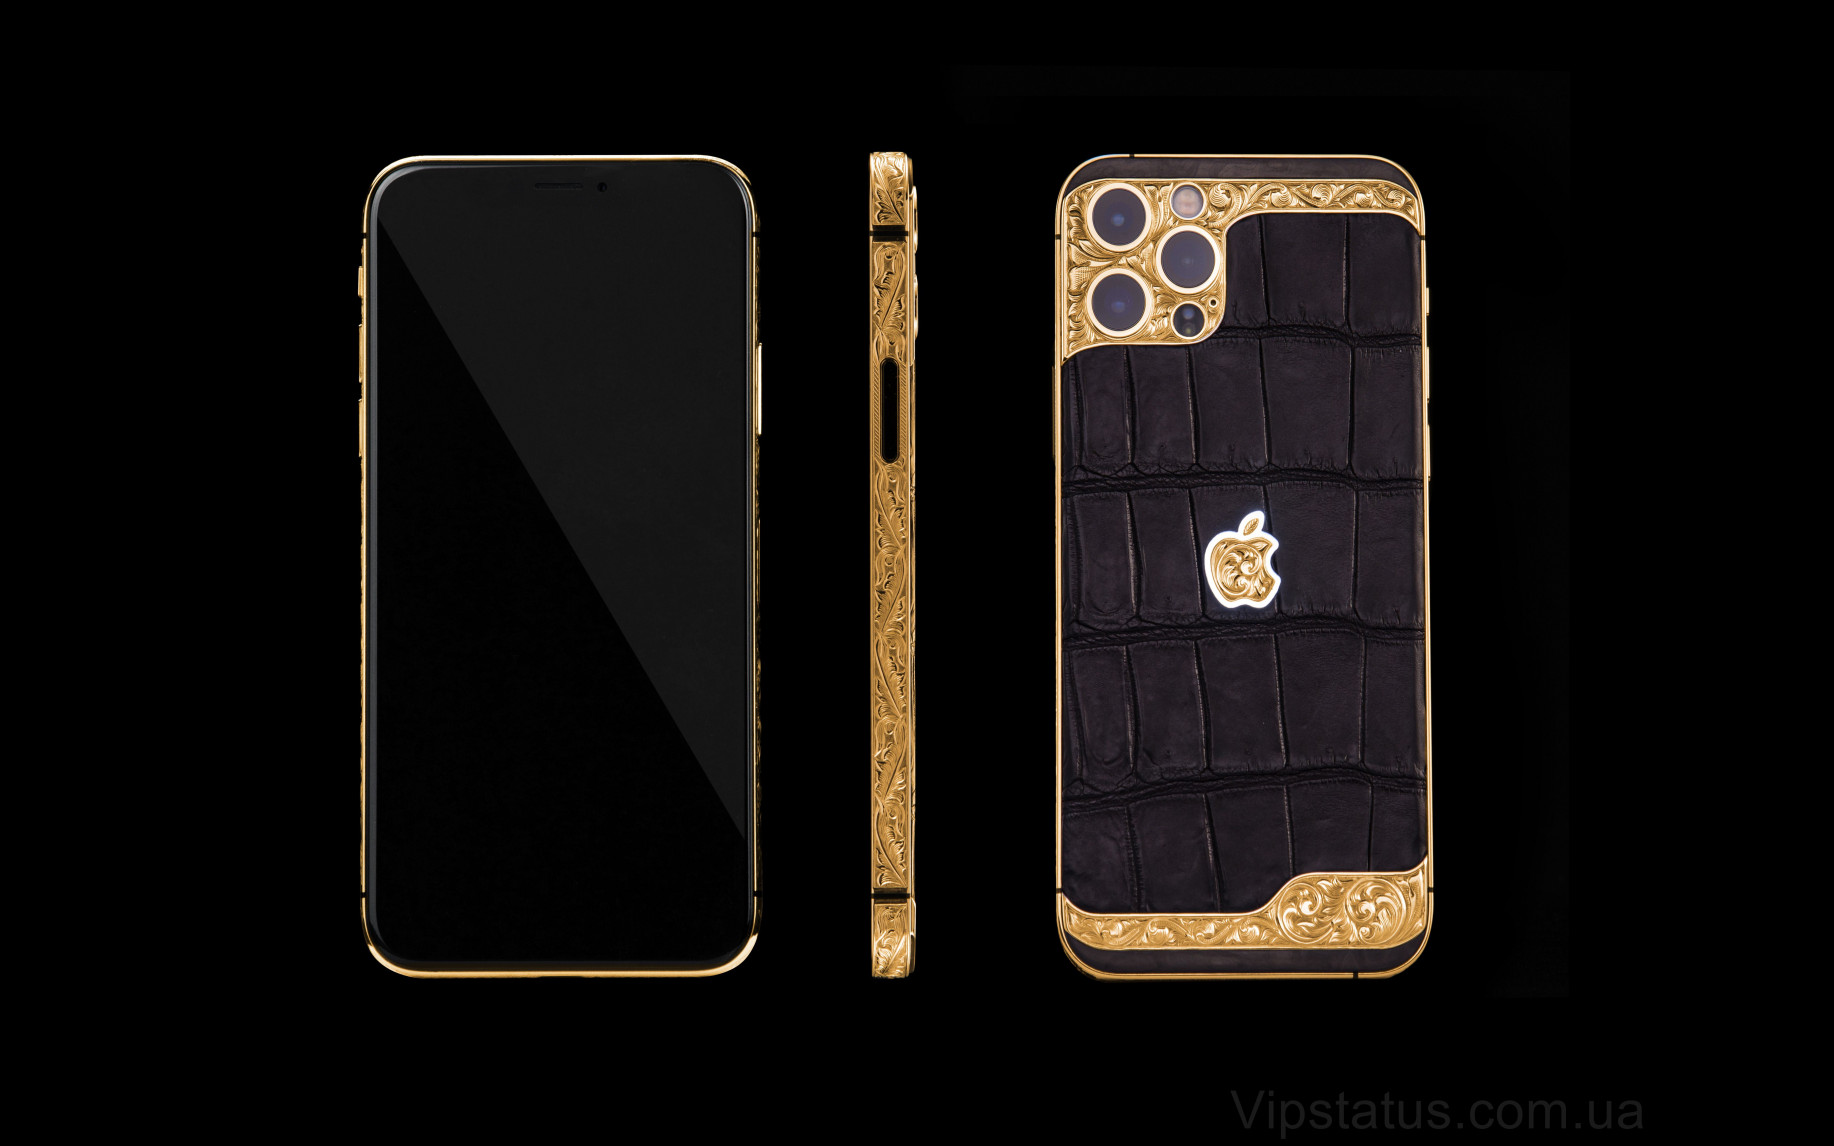 Elite Gold Lord IPHONE 12 PRO MAX 512 GB Gold Lord IPHONE 12 PRO MAX 512 GB image 5